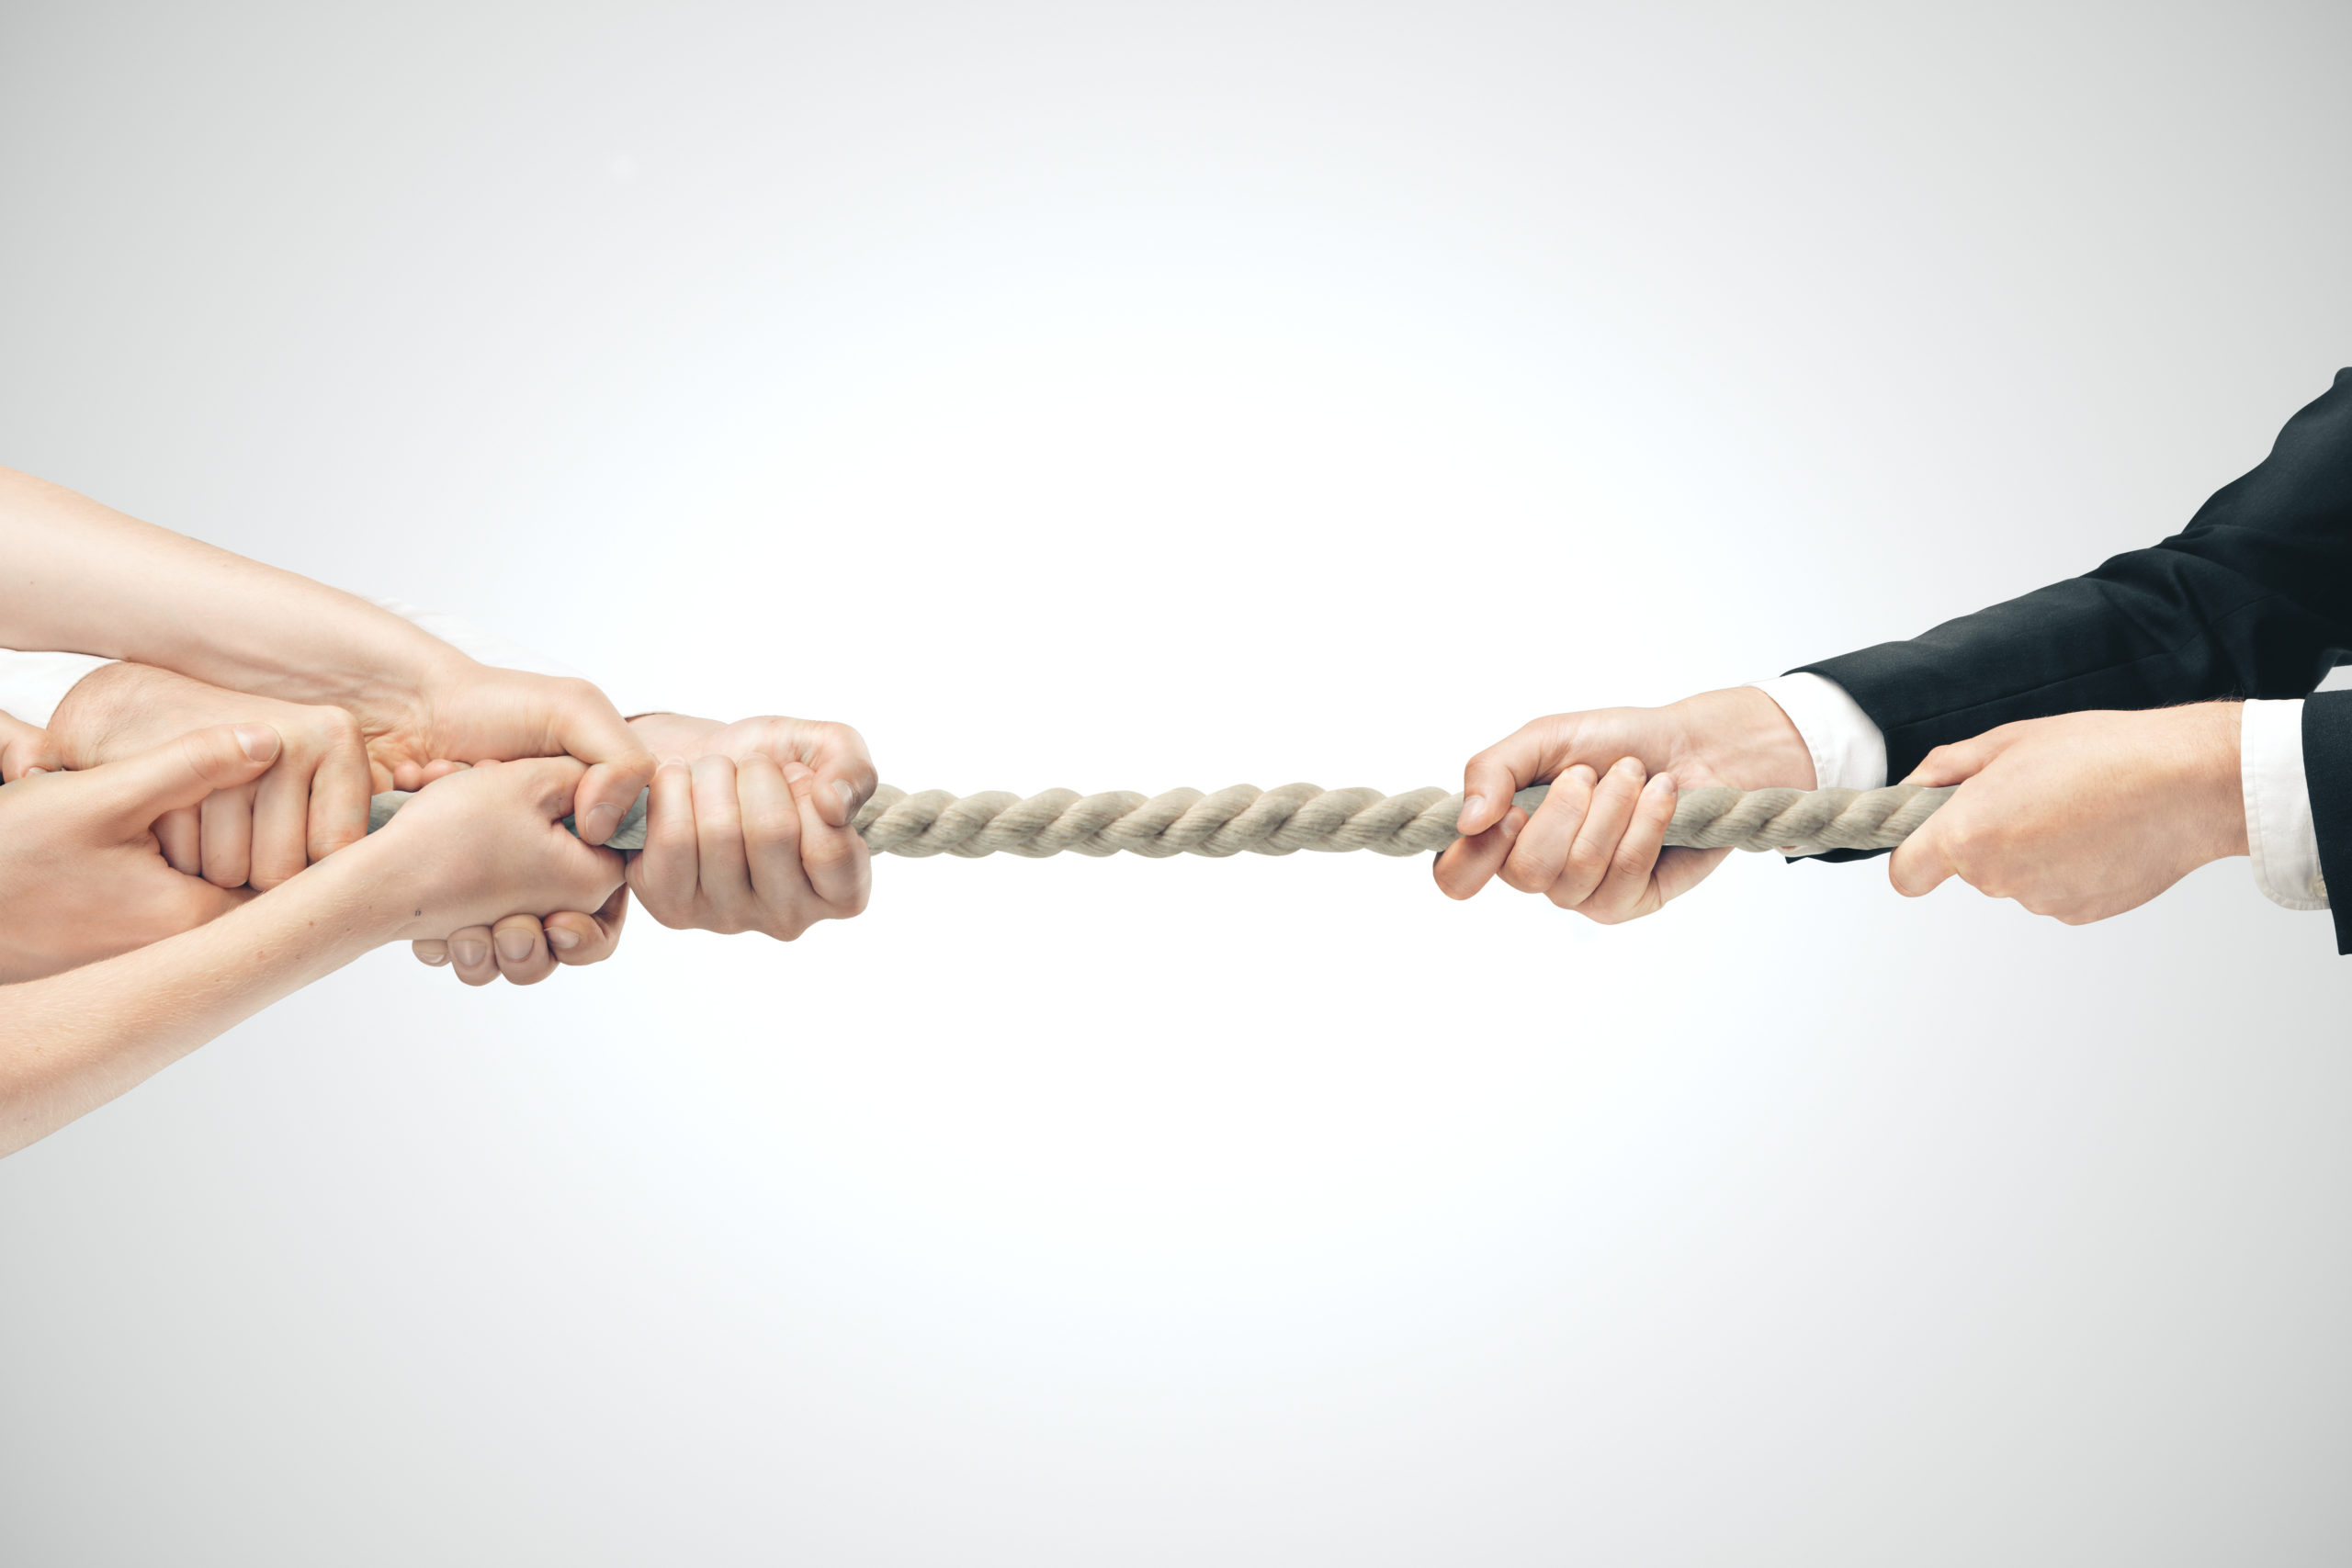 Hands playing tug of war with strong rope on white background